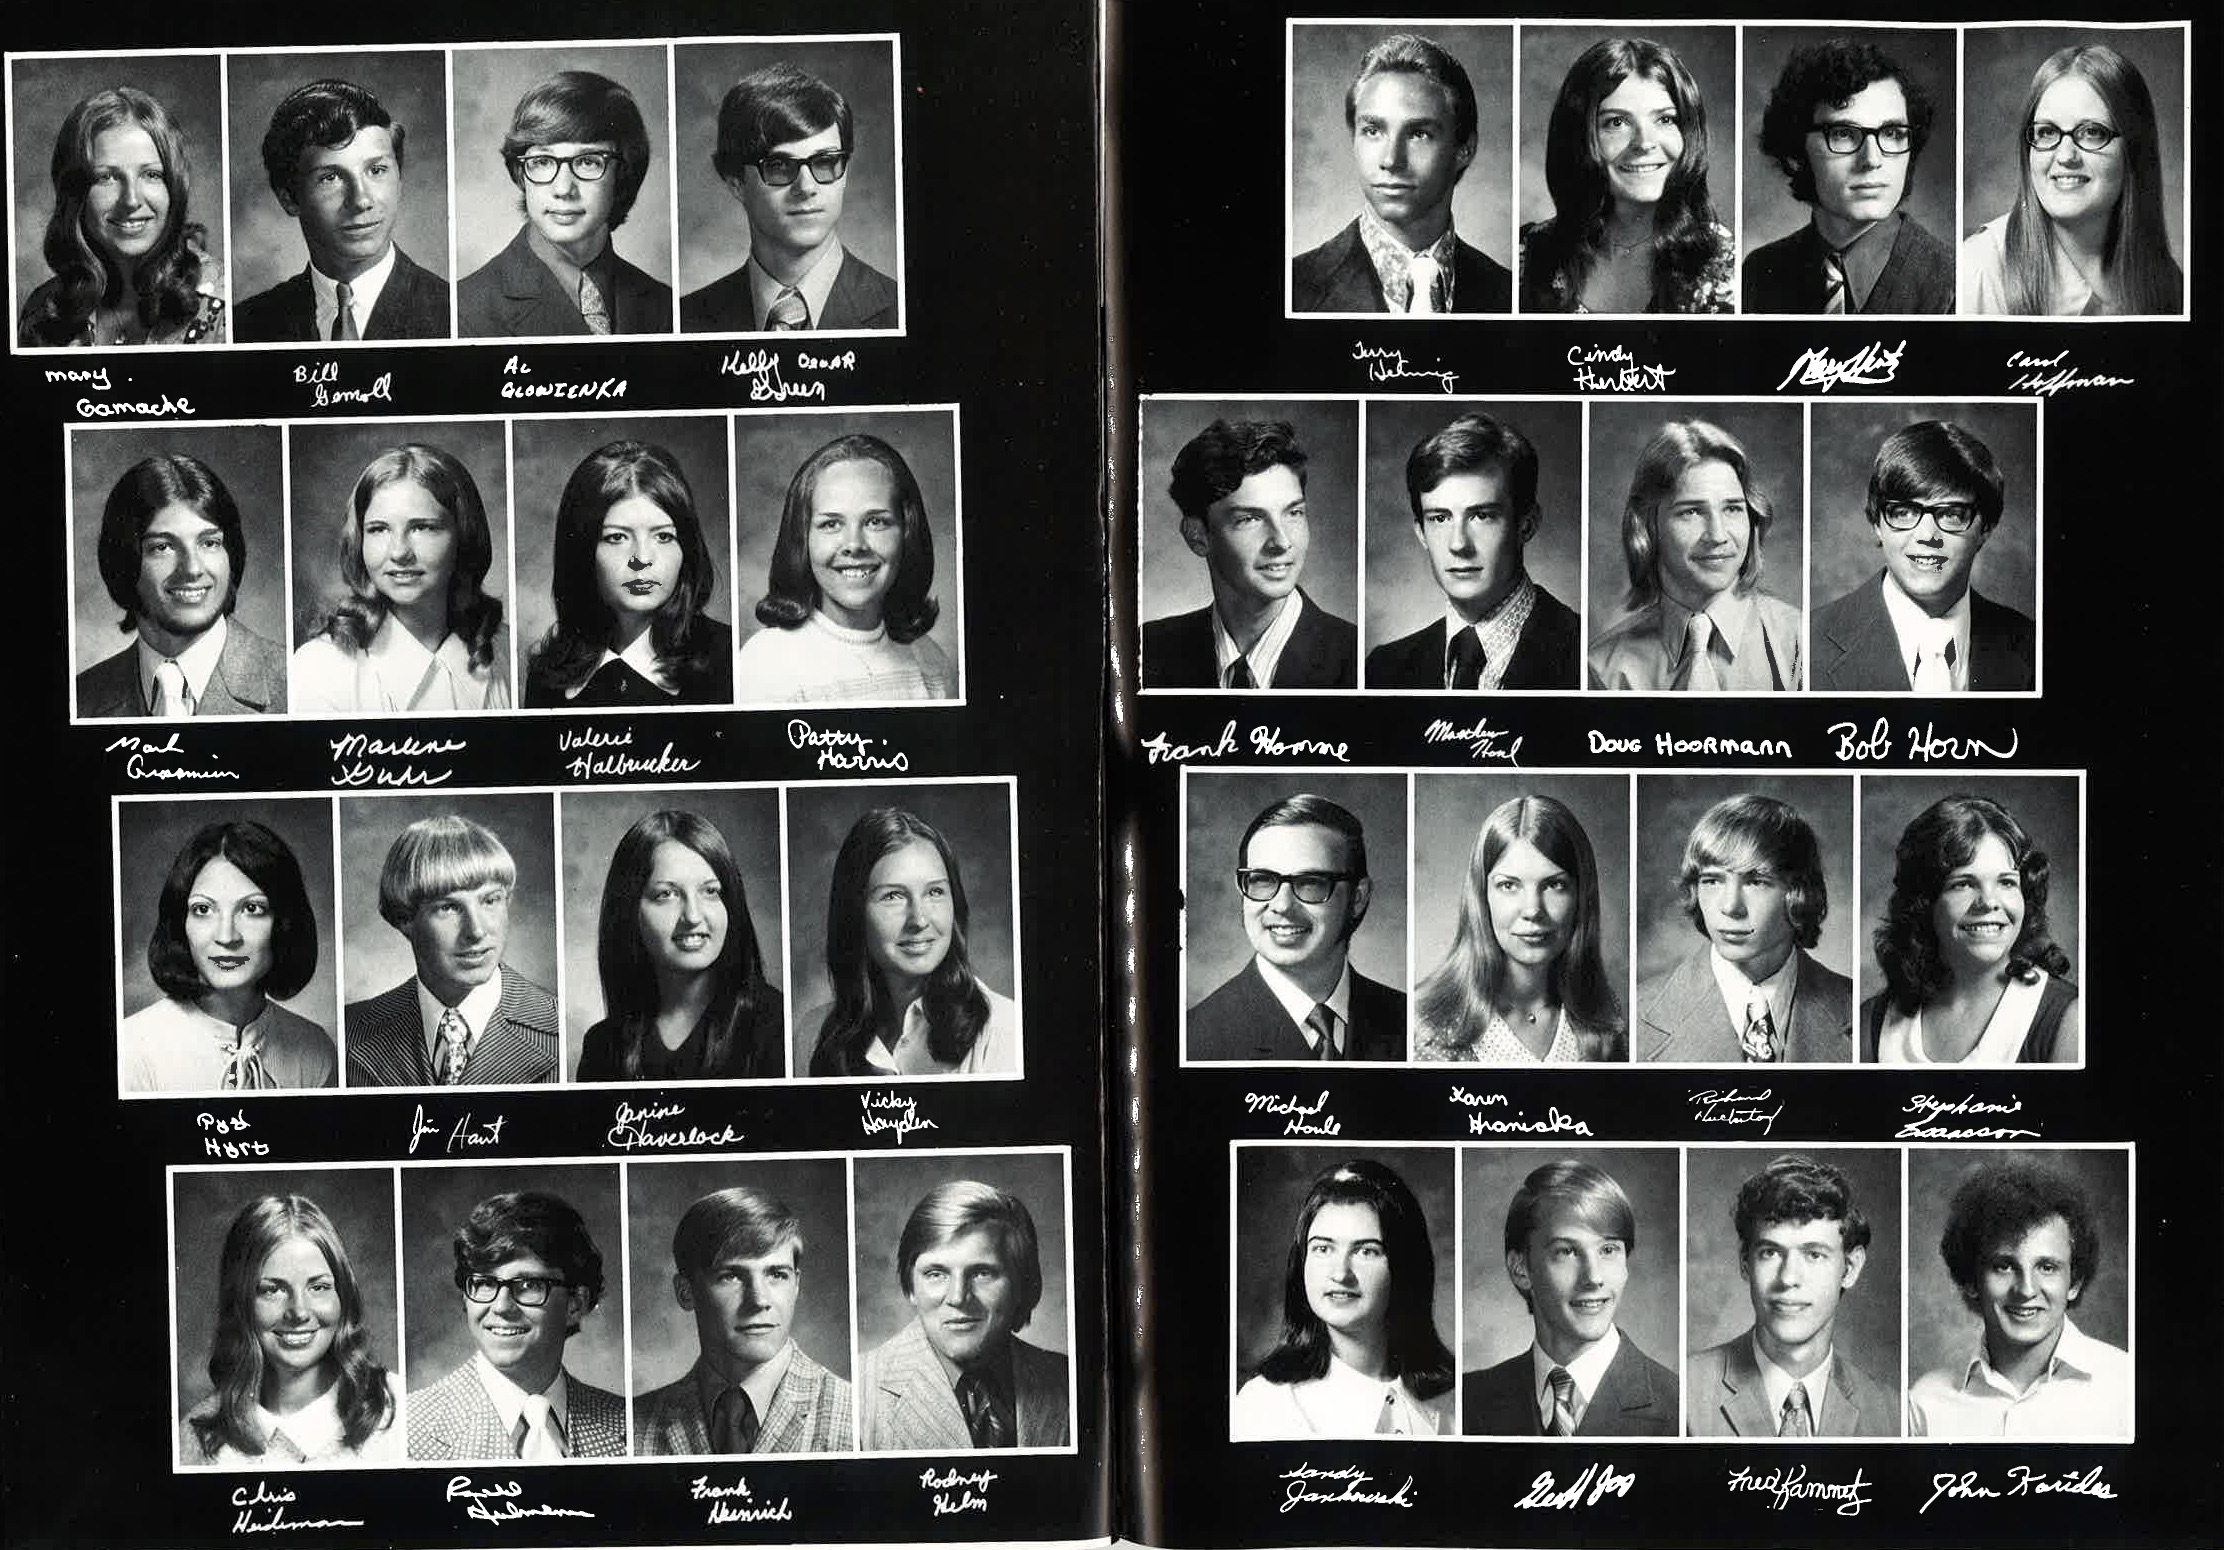 1973_Yearbook_64-65.jpg